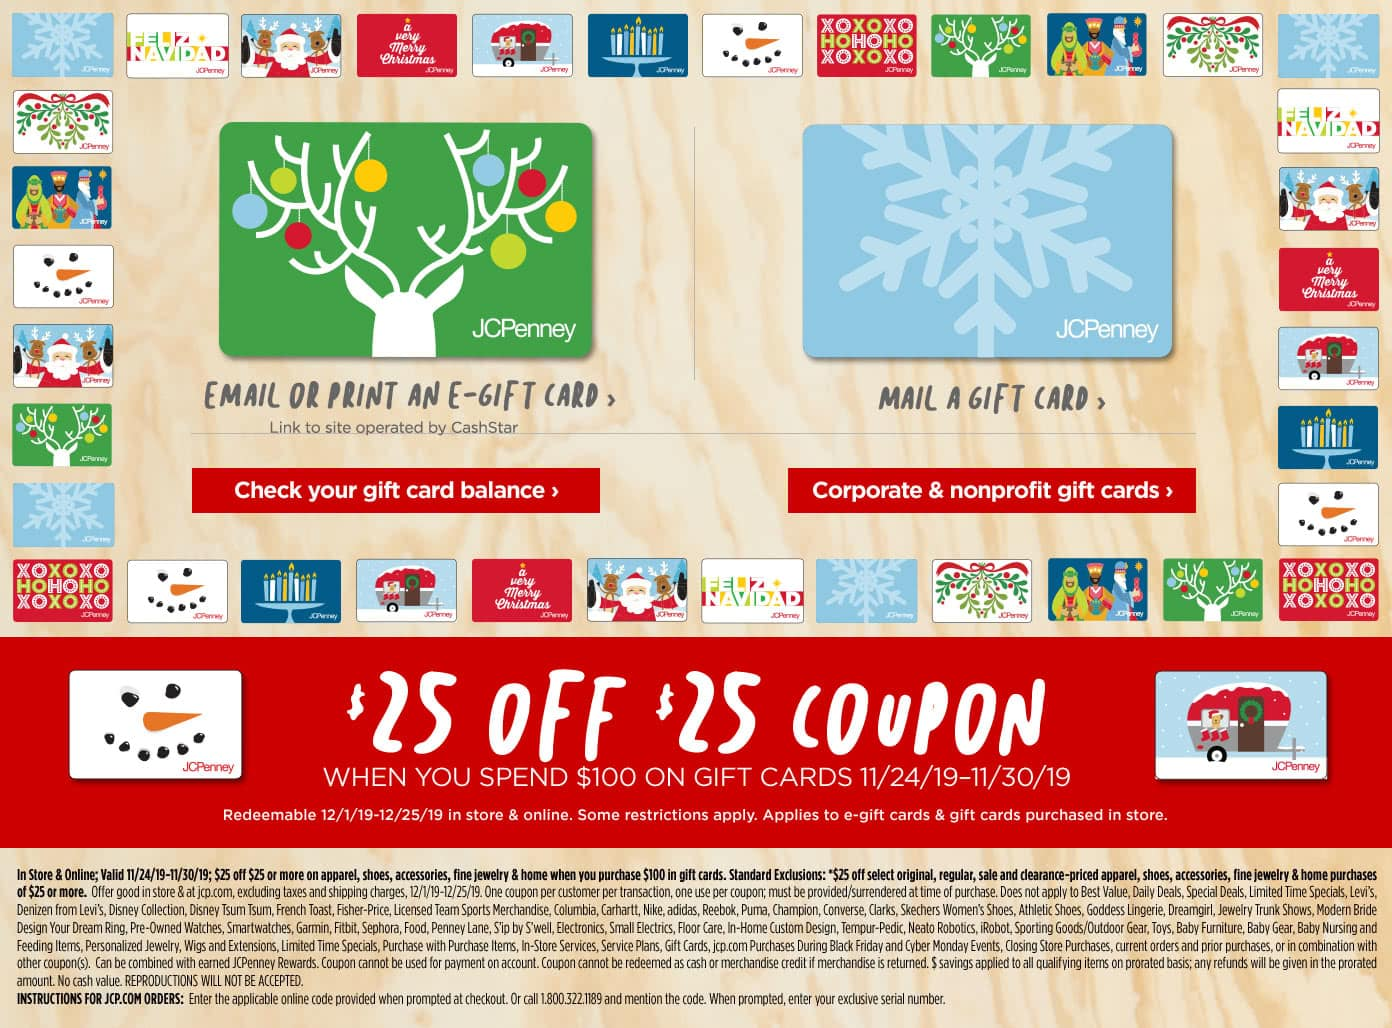 JcPenney: Purchase $100 in Gift Cards, get $25 off $25 coupon